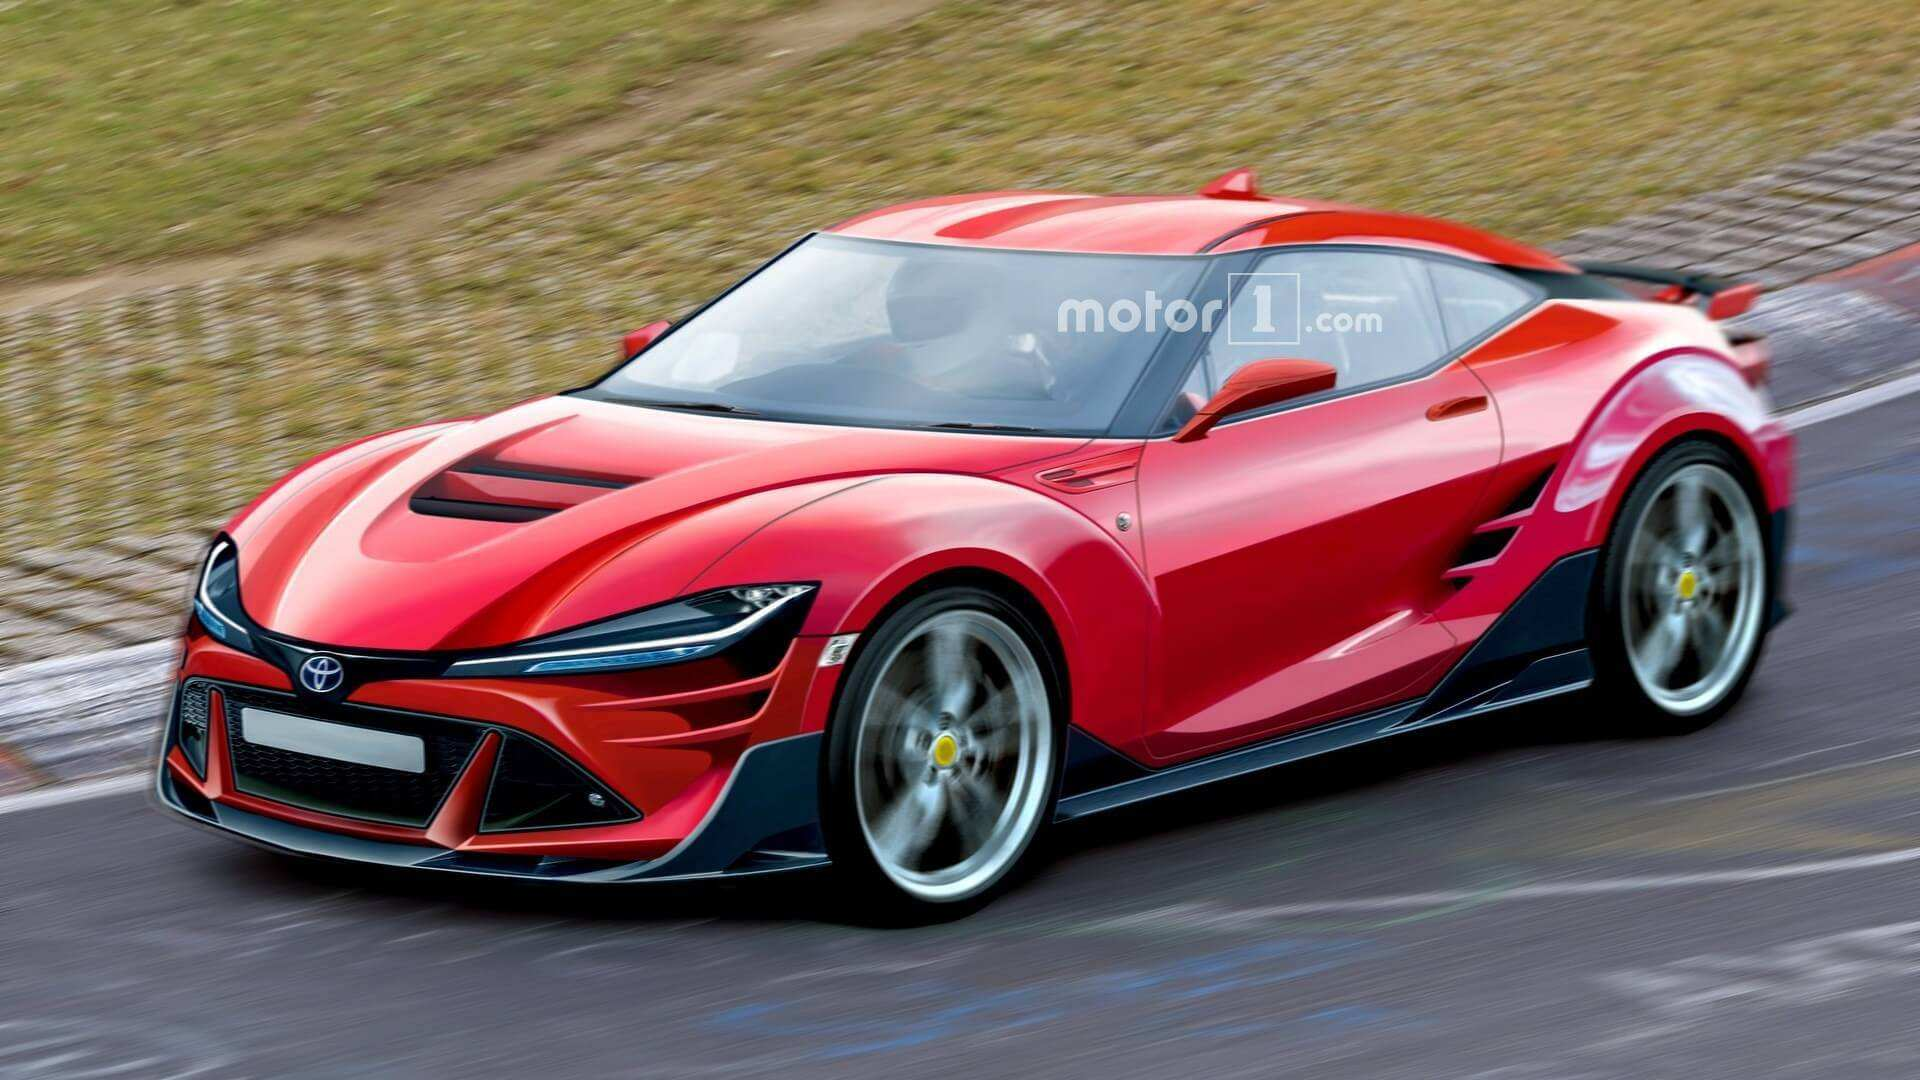 47 Best Review 2020 Toyota Brz Price with 2020 Toyota Brz